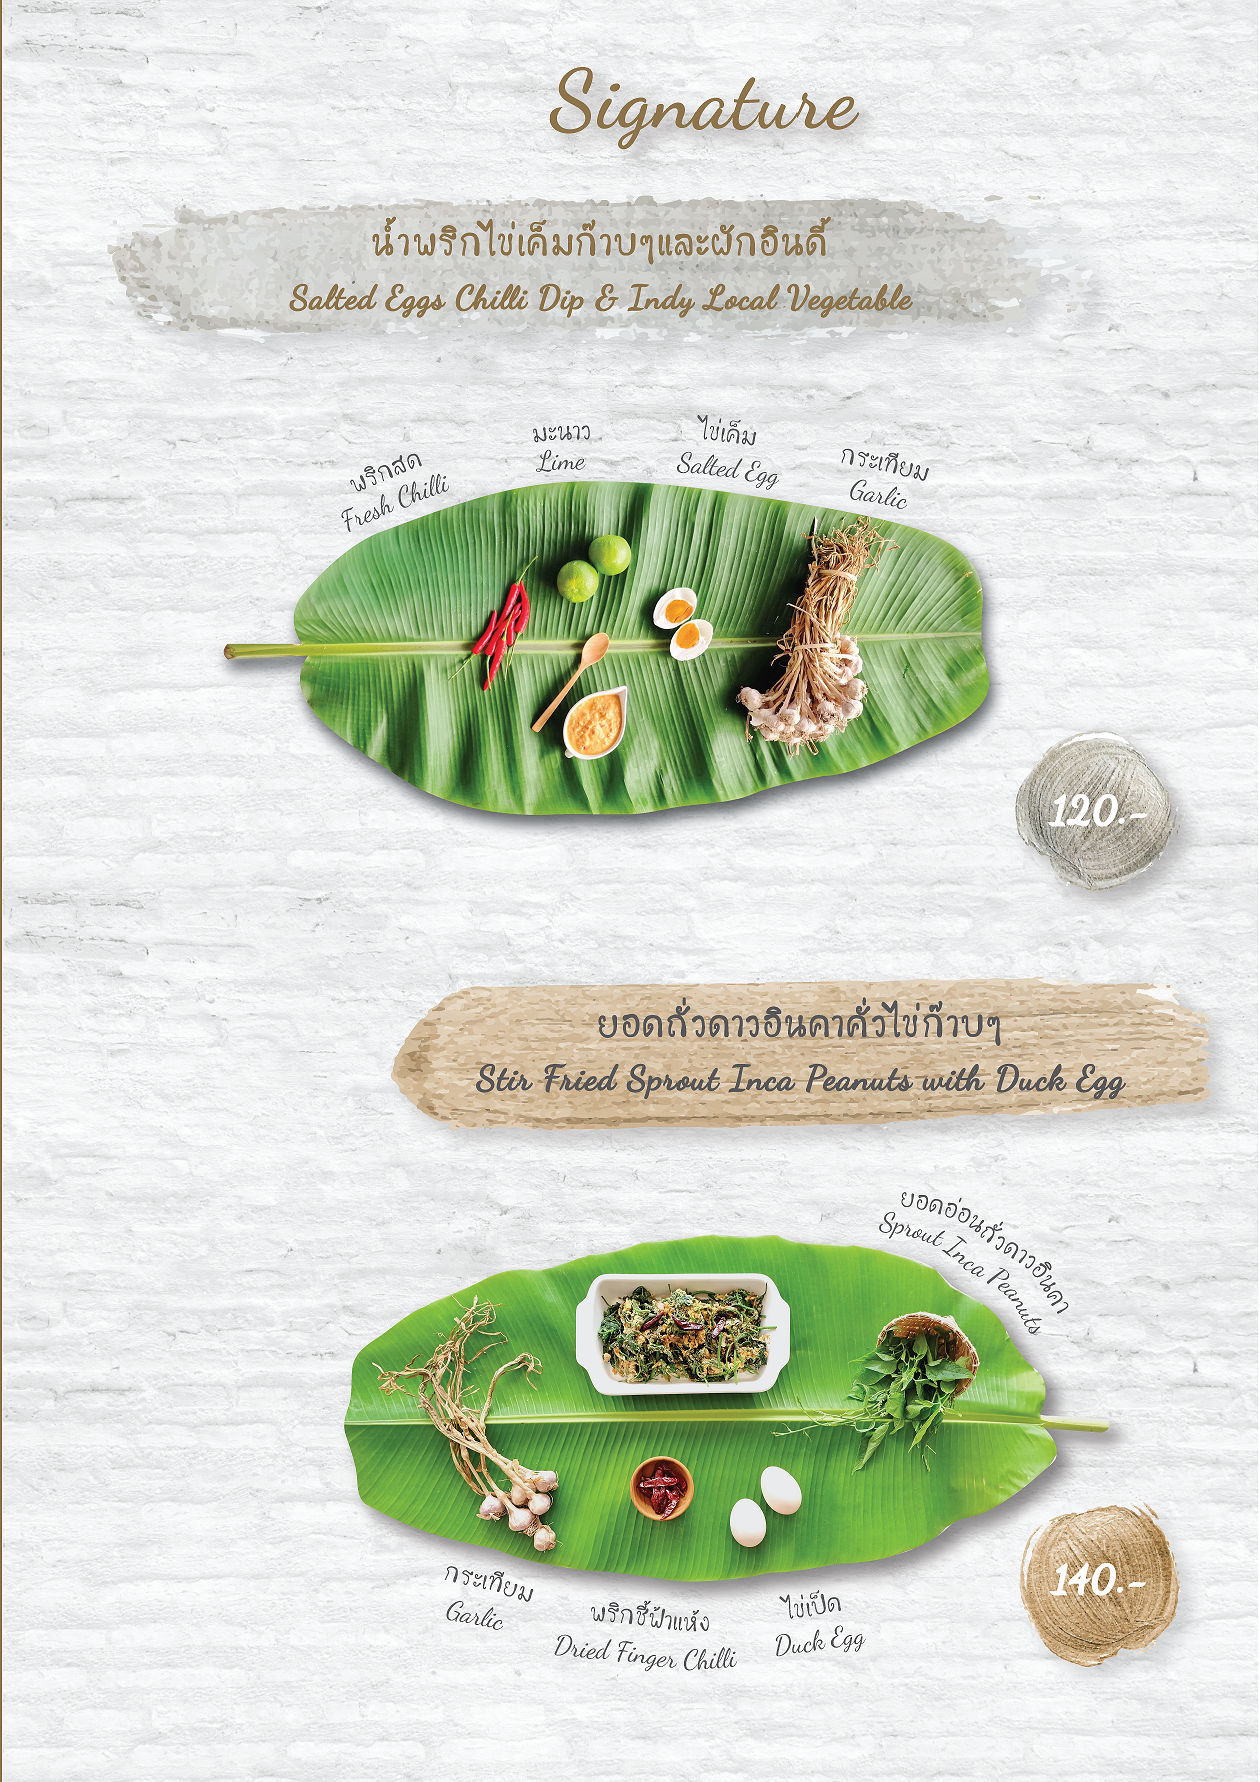 _กับข้าวบ้าน.Final.Menu.List&Signature.30.11.59_17 page_Page_07.png